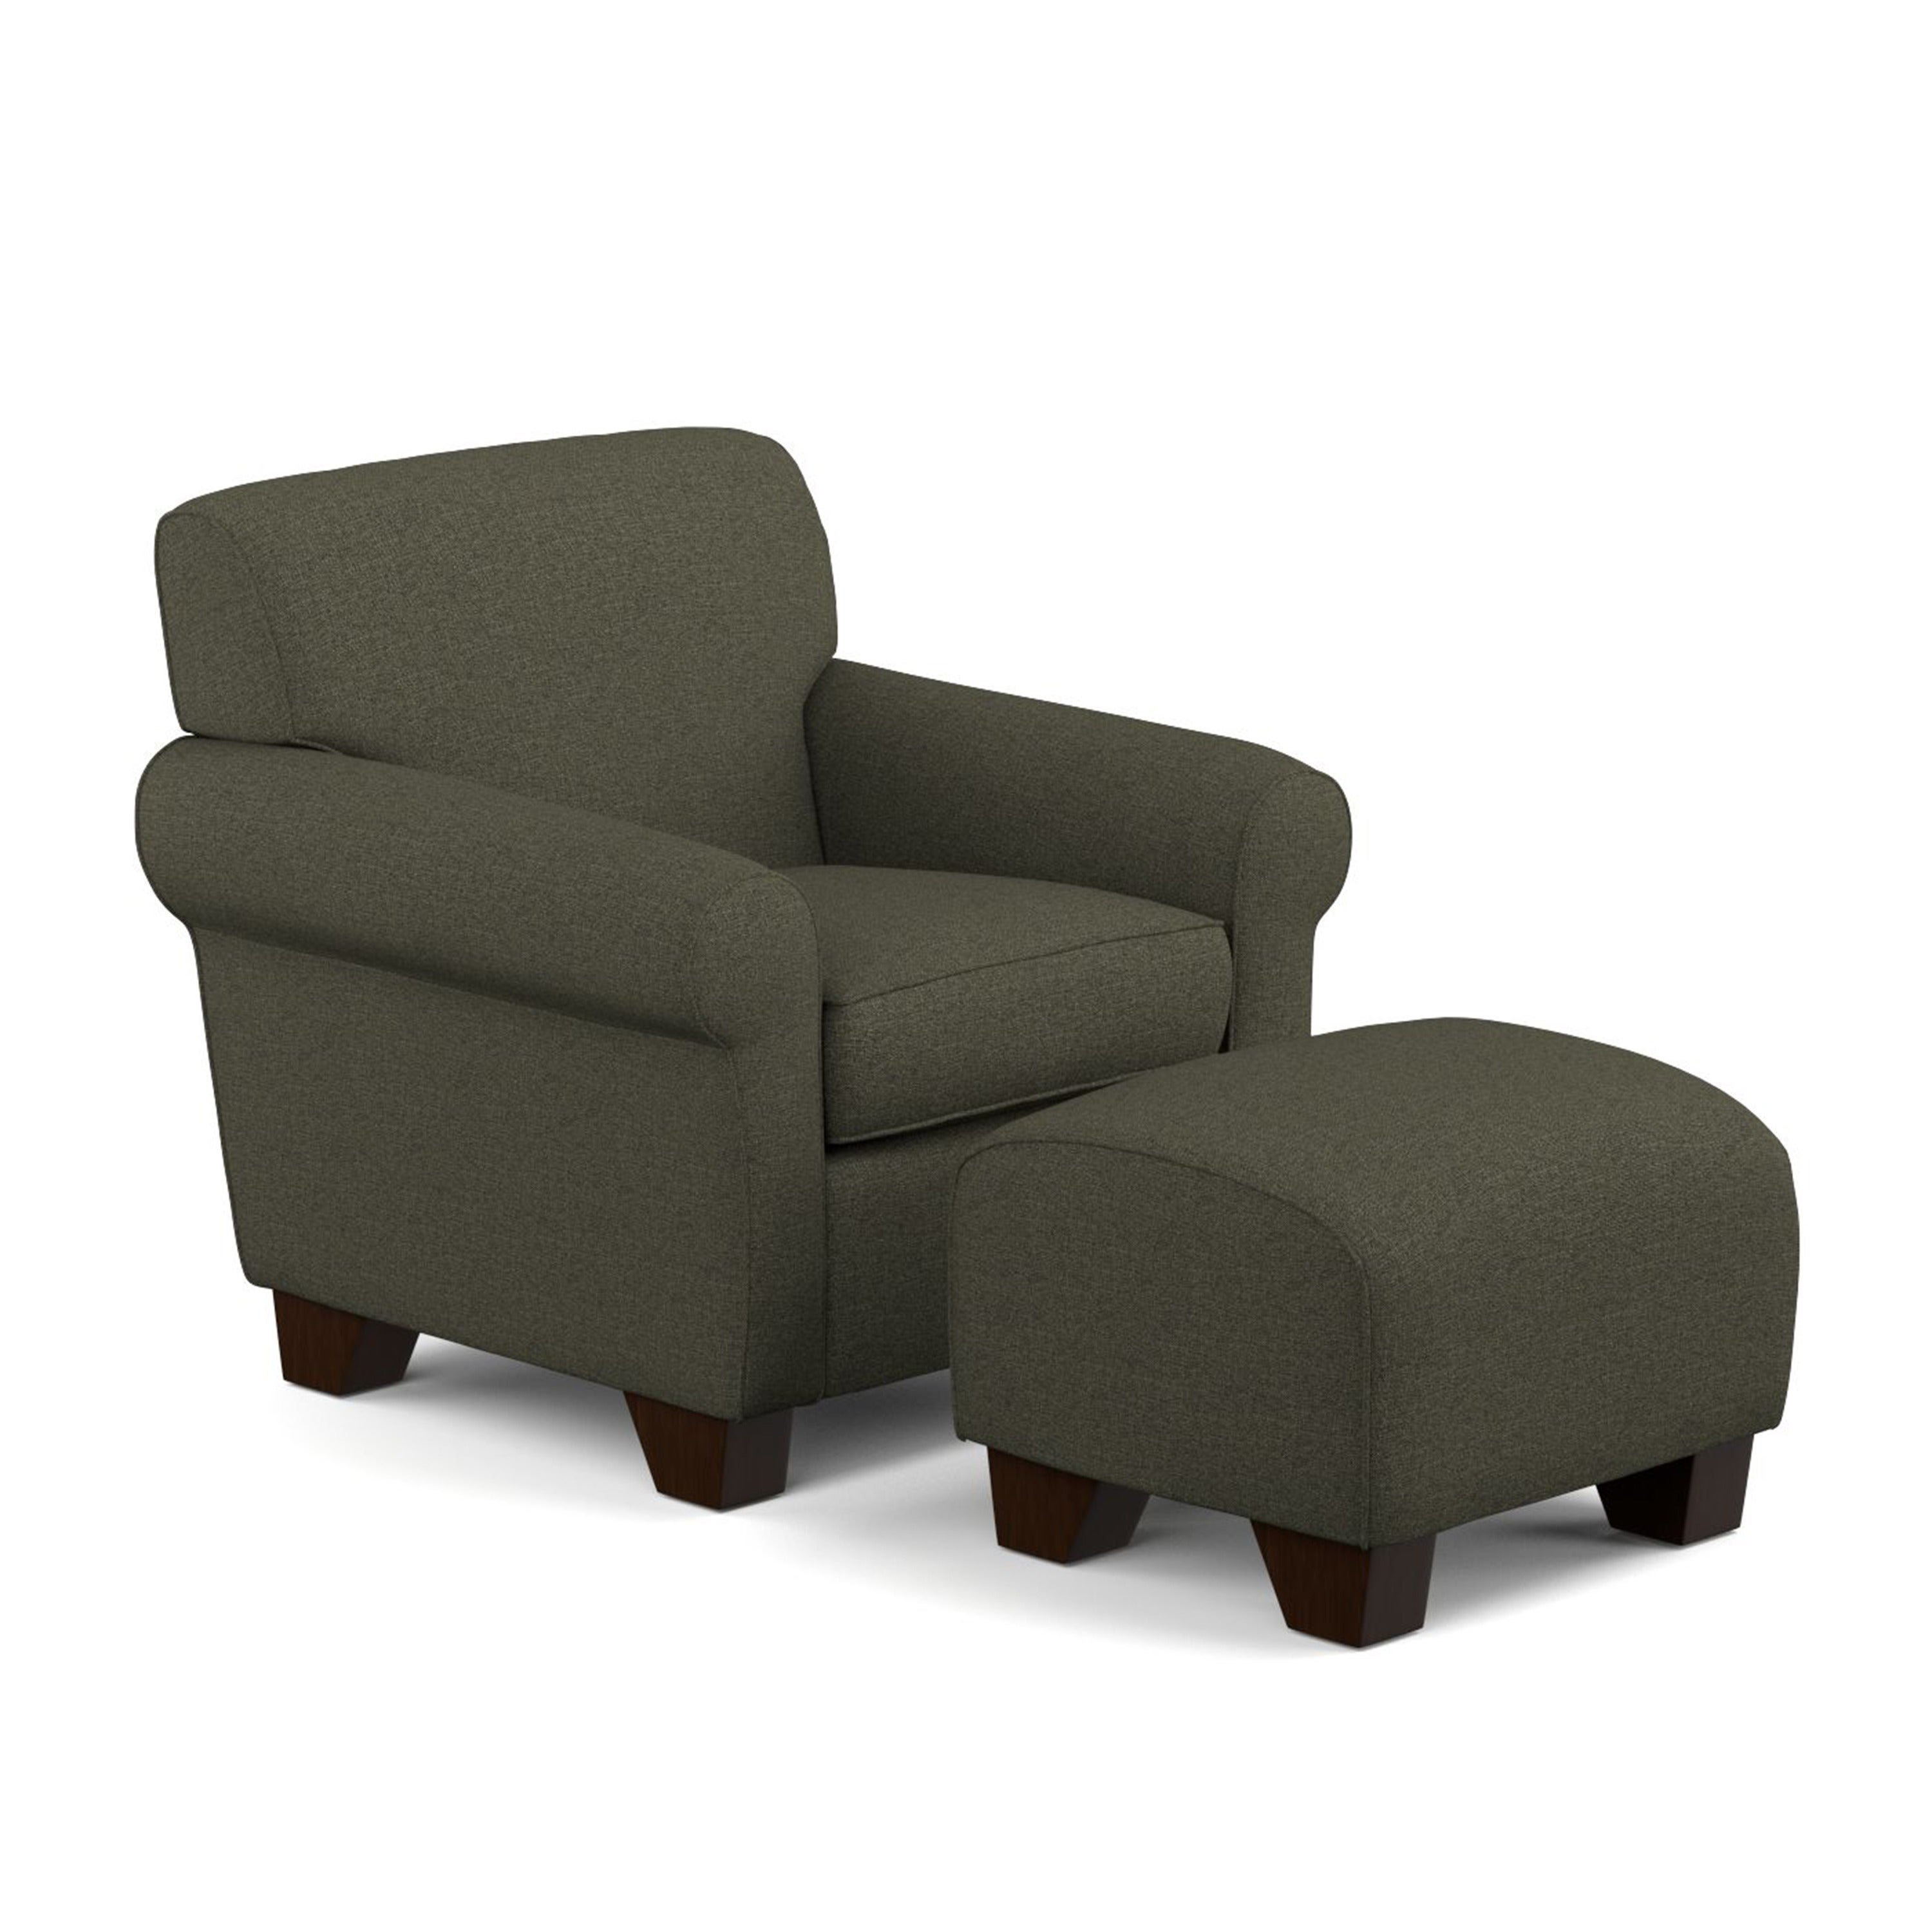 walmart ottomans chair and multiple com ottoman divulge overstock colors chairs ip armchair modway